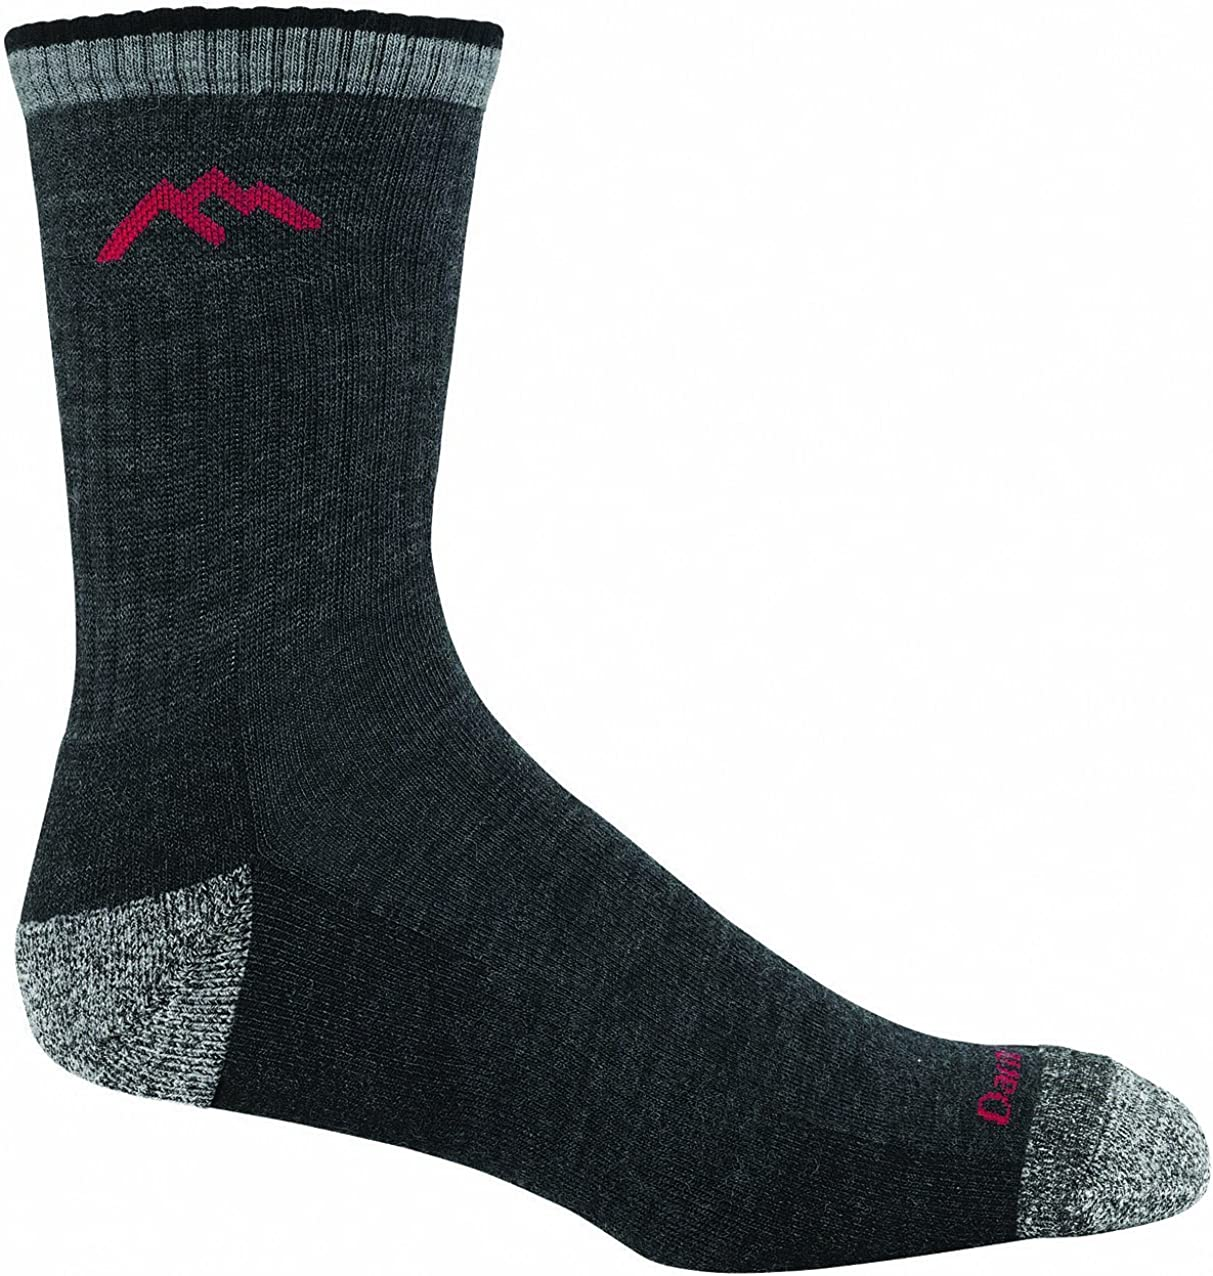 Darn Tough Vermont Women/'s Merino Wool Seamless hiking Socks S 3.5-6